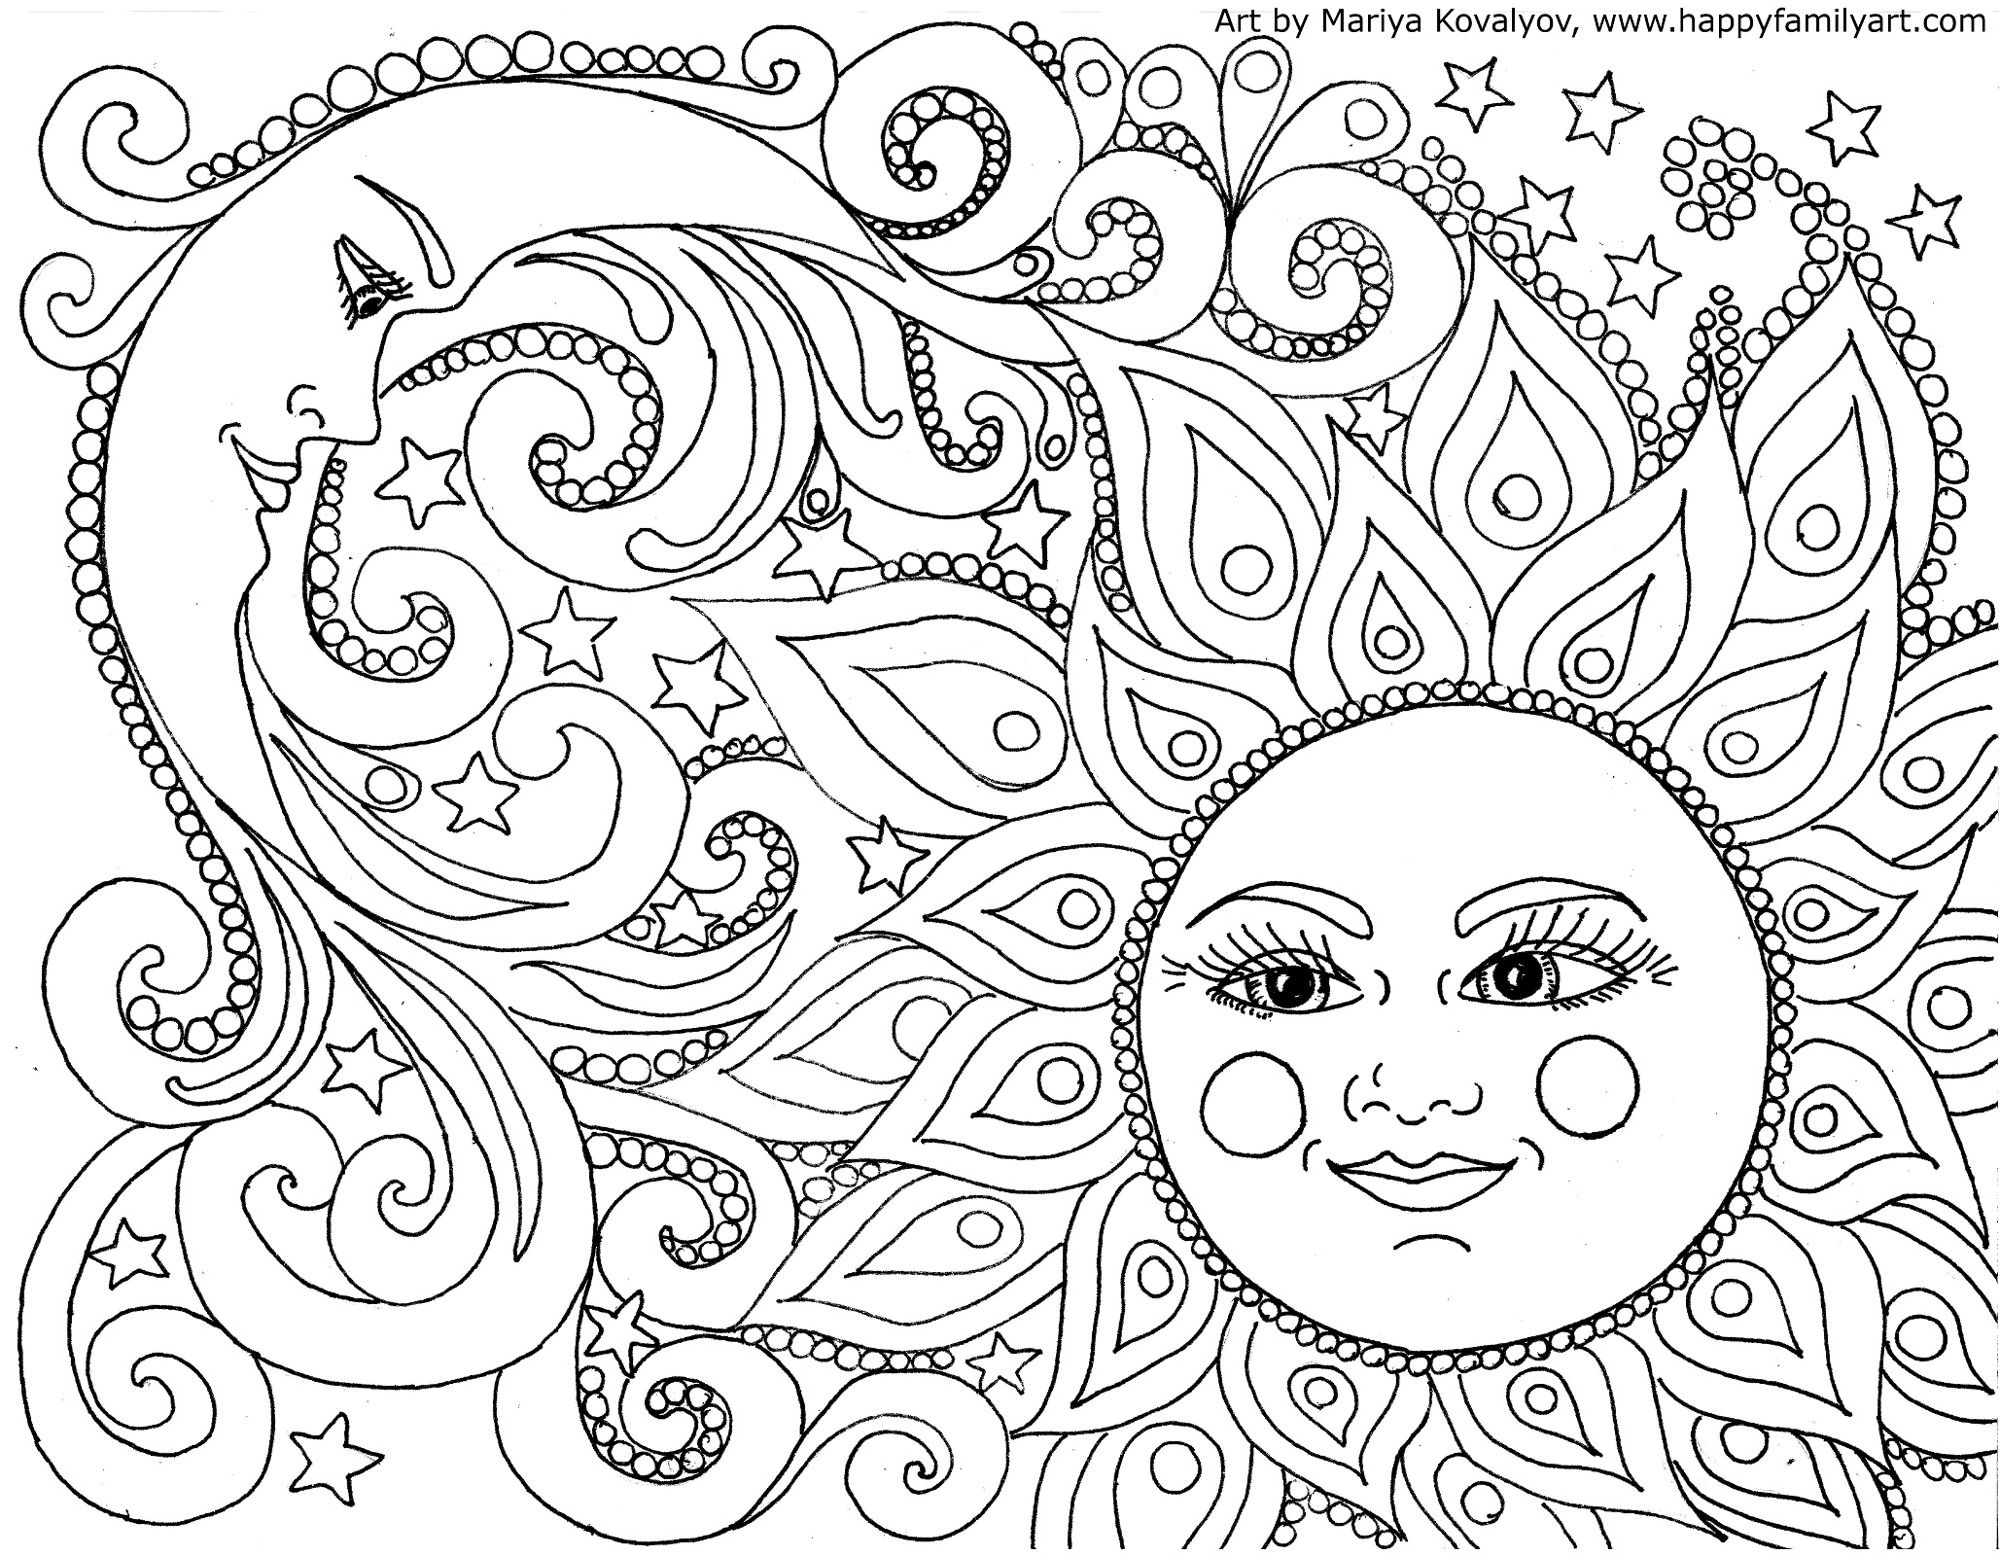 Printable coloring books adults - I Made Many Great Fun And Original Coloring Pages Color Your Heart Out Printable Adult Coloring